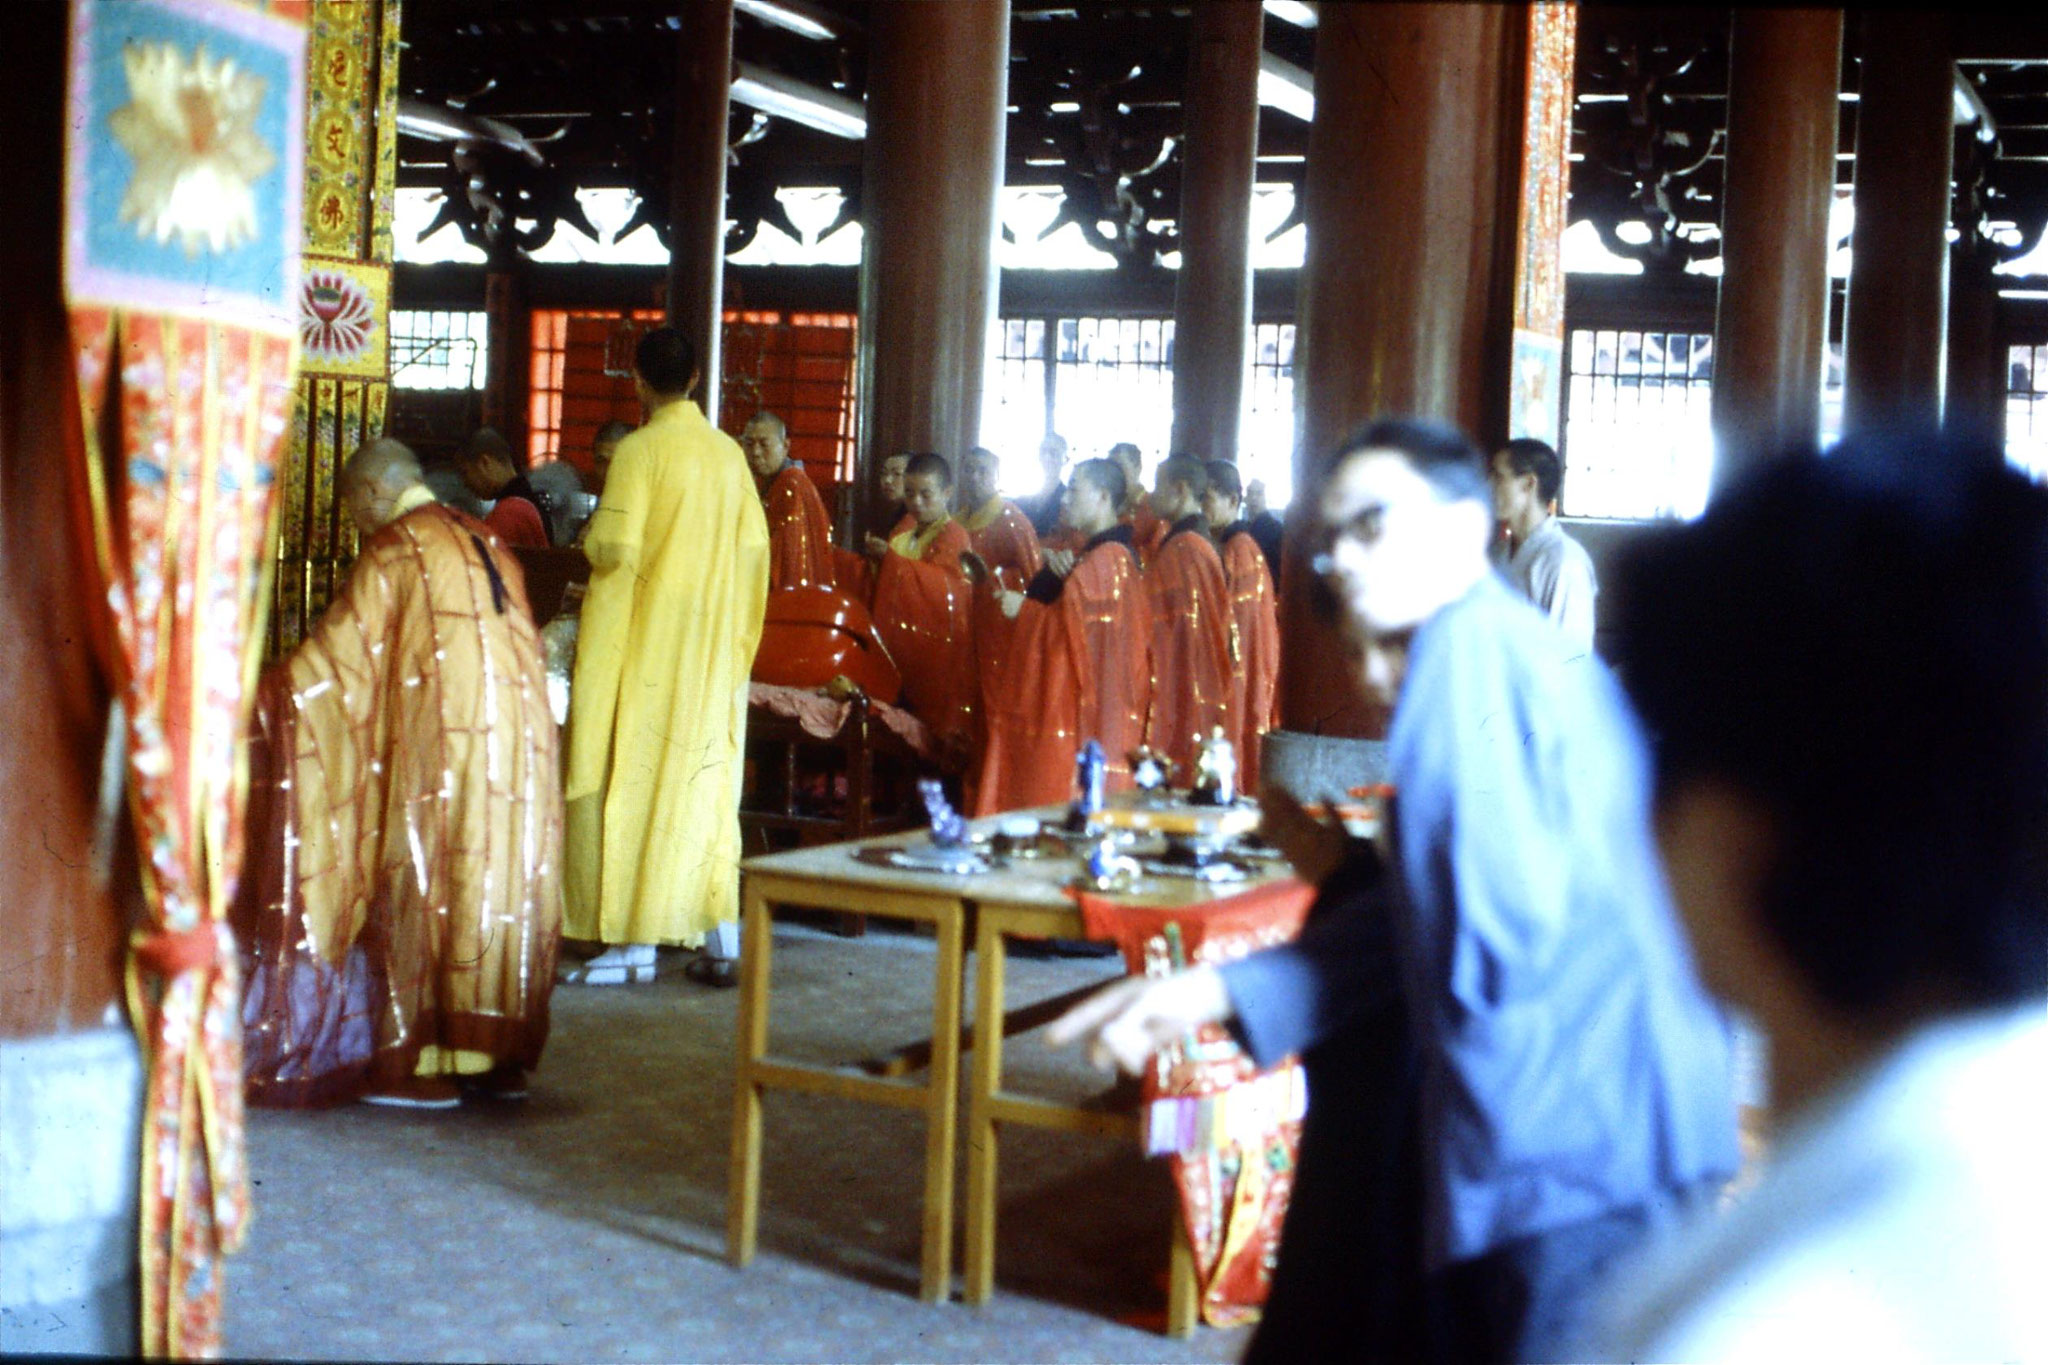 18/5/1989: 3: Guangzhou Filial Piety Temple ceremony